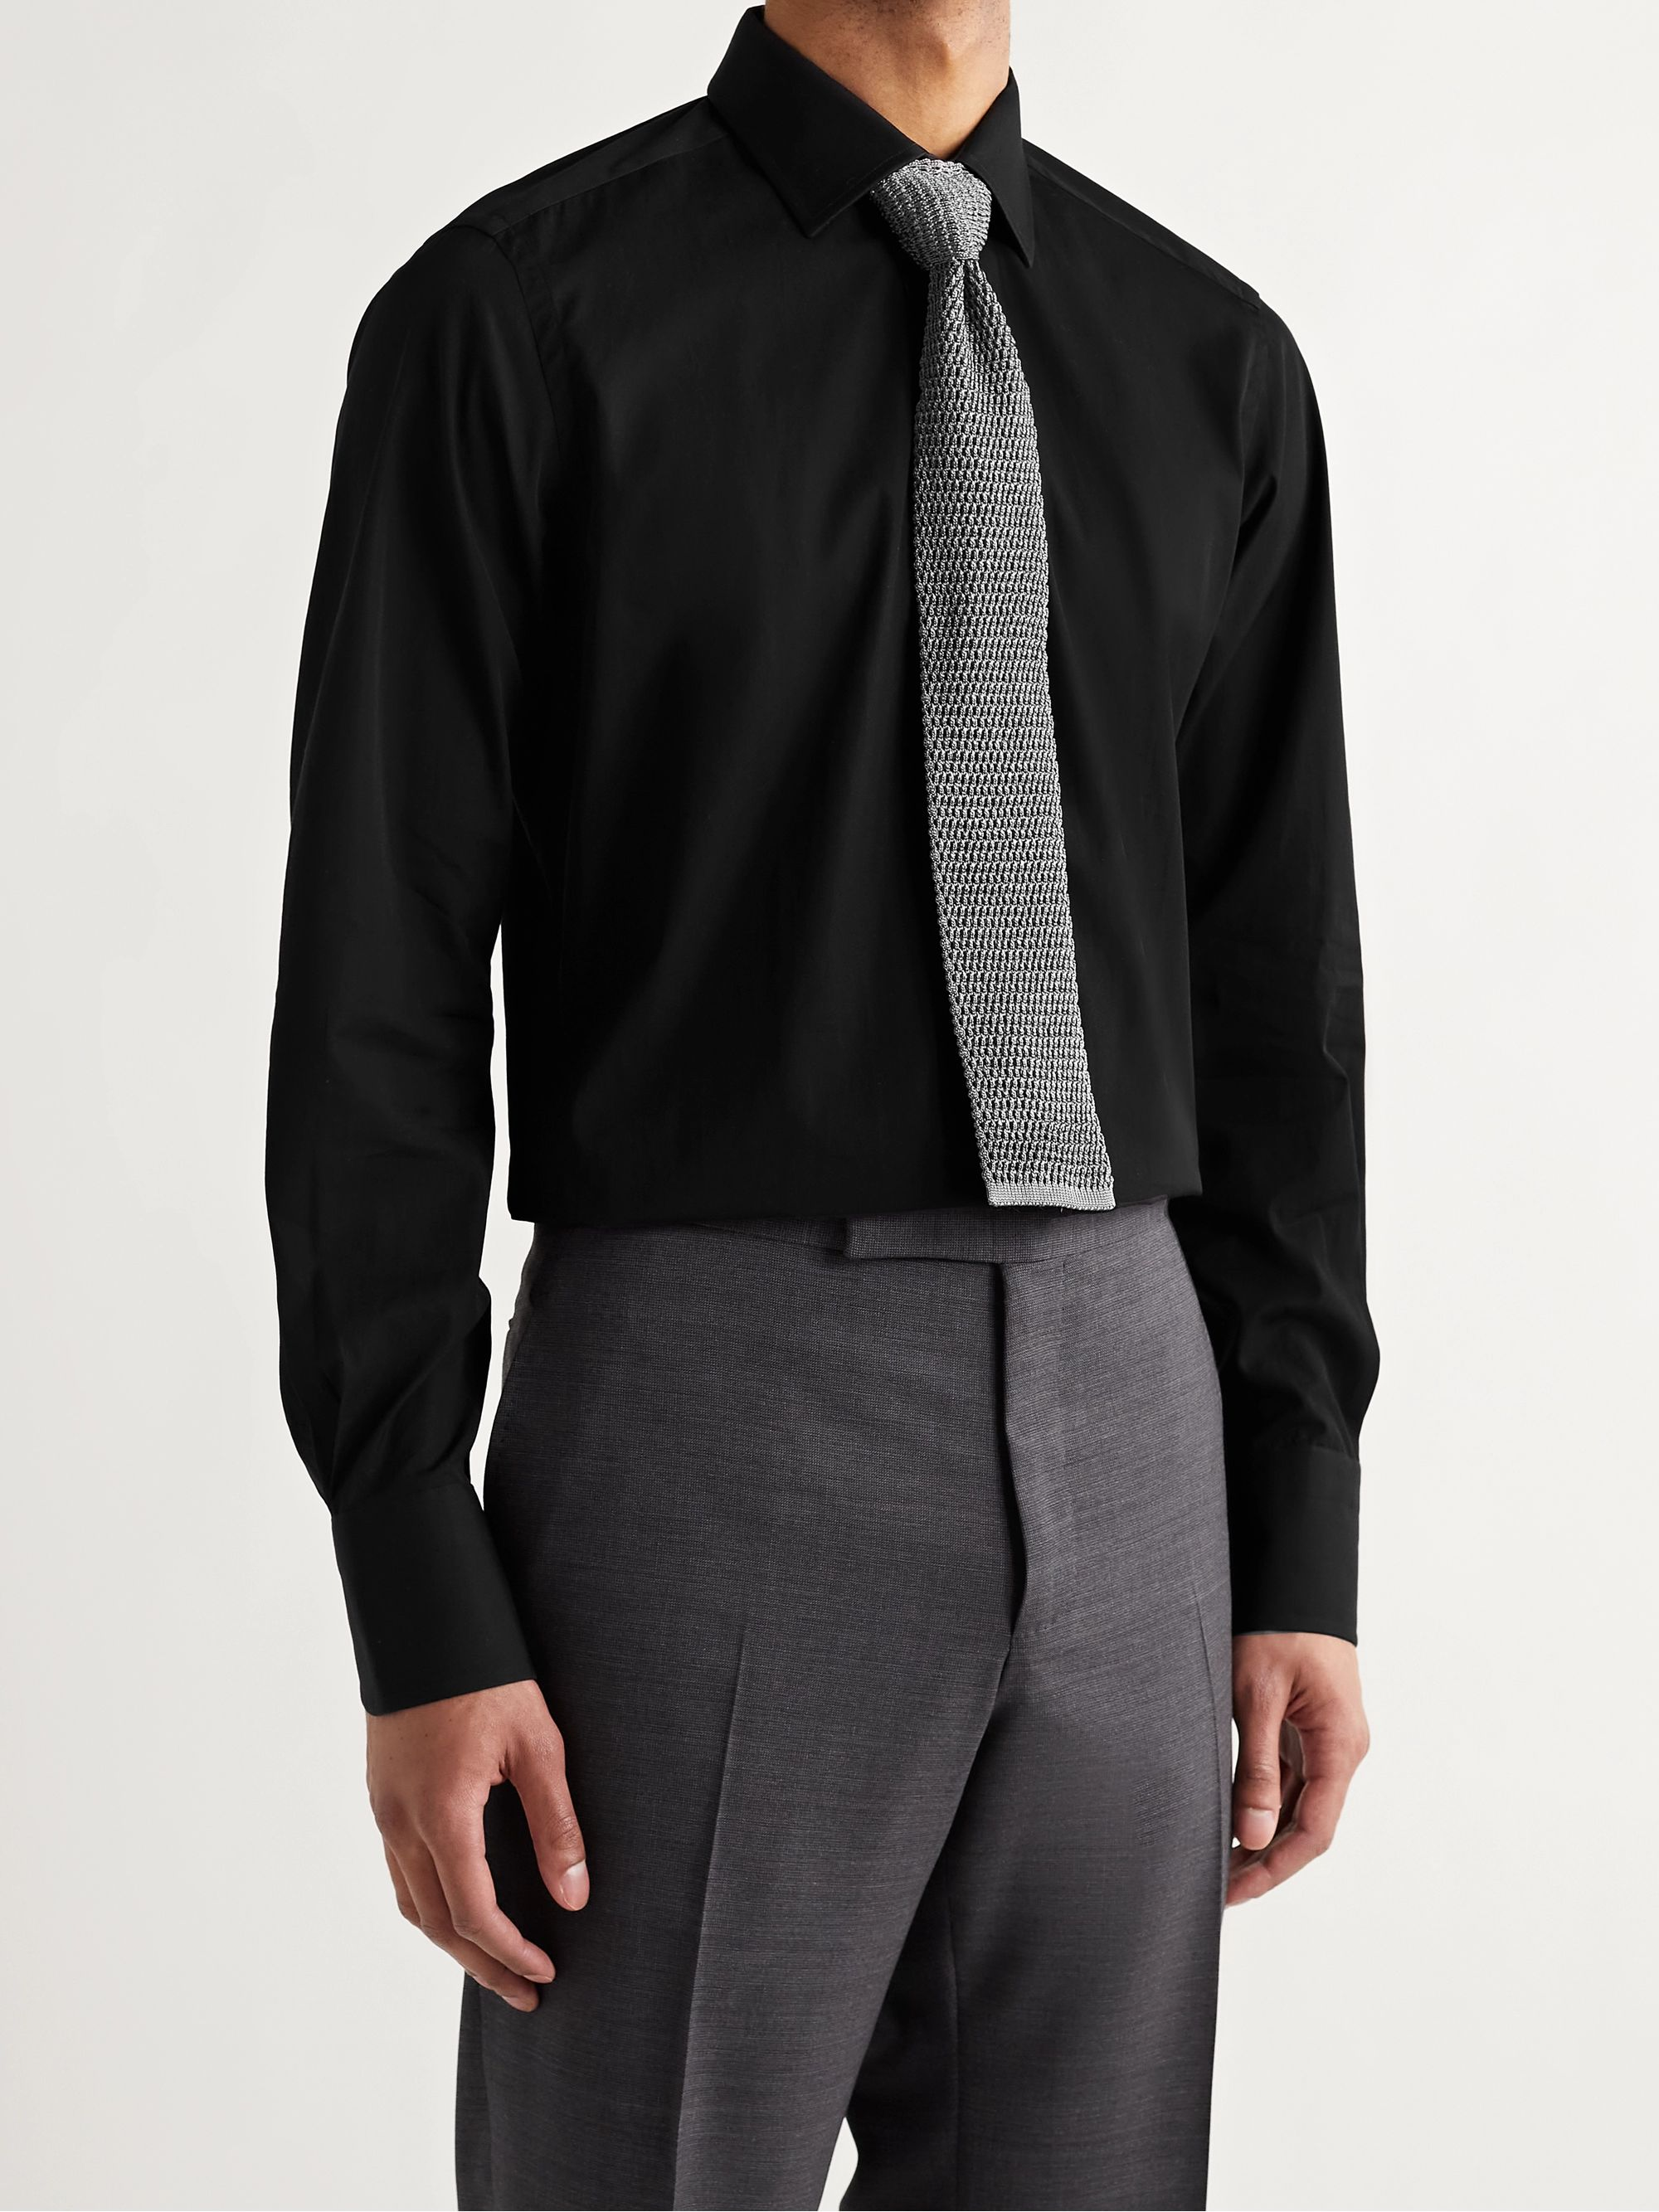 TOM FORD Black Slim-Fit Cotton-Poplin Shirt